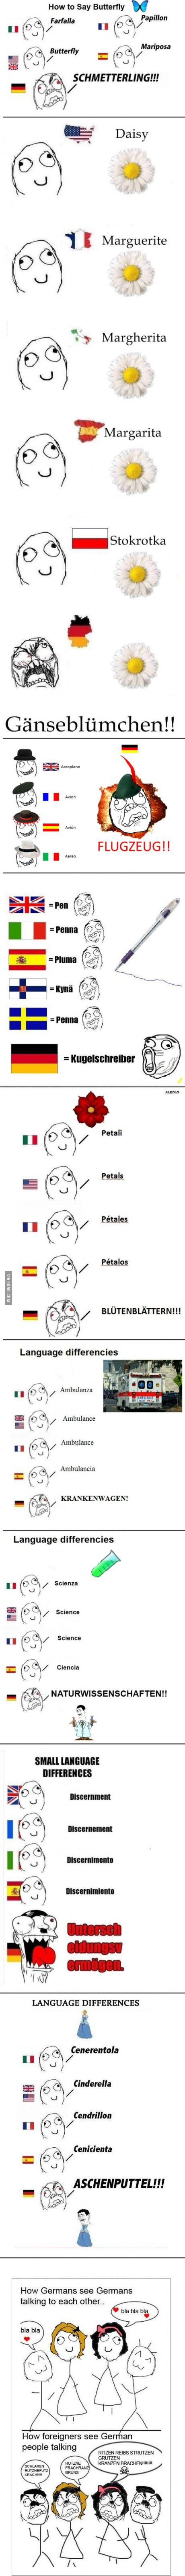 Died laughing!!!! So funny. I mean I am german and I love this language, but finally it's true. In many aspects